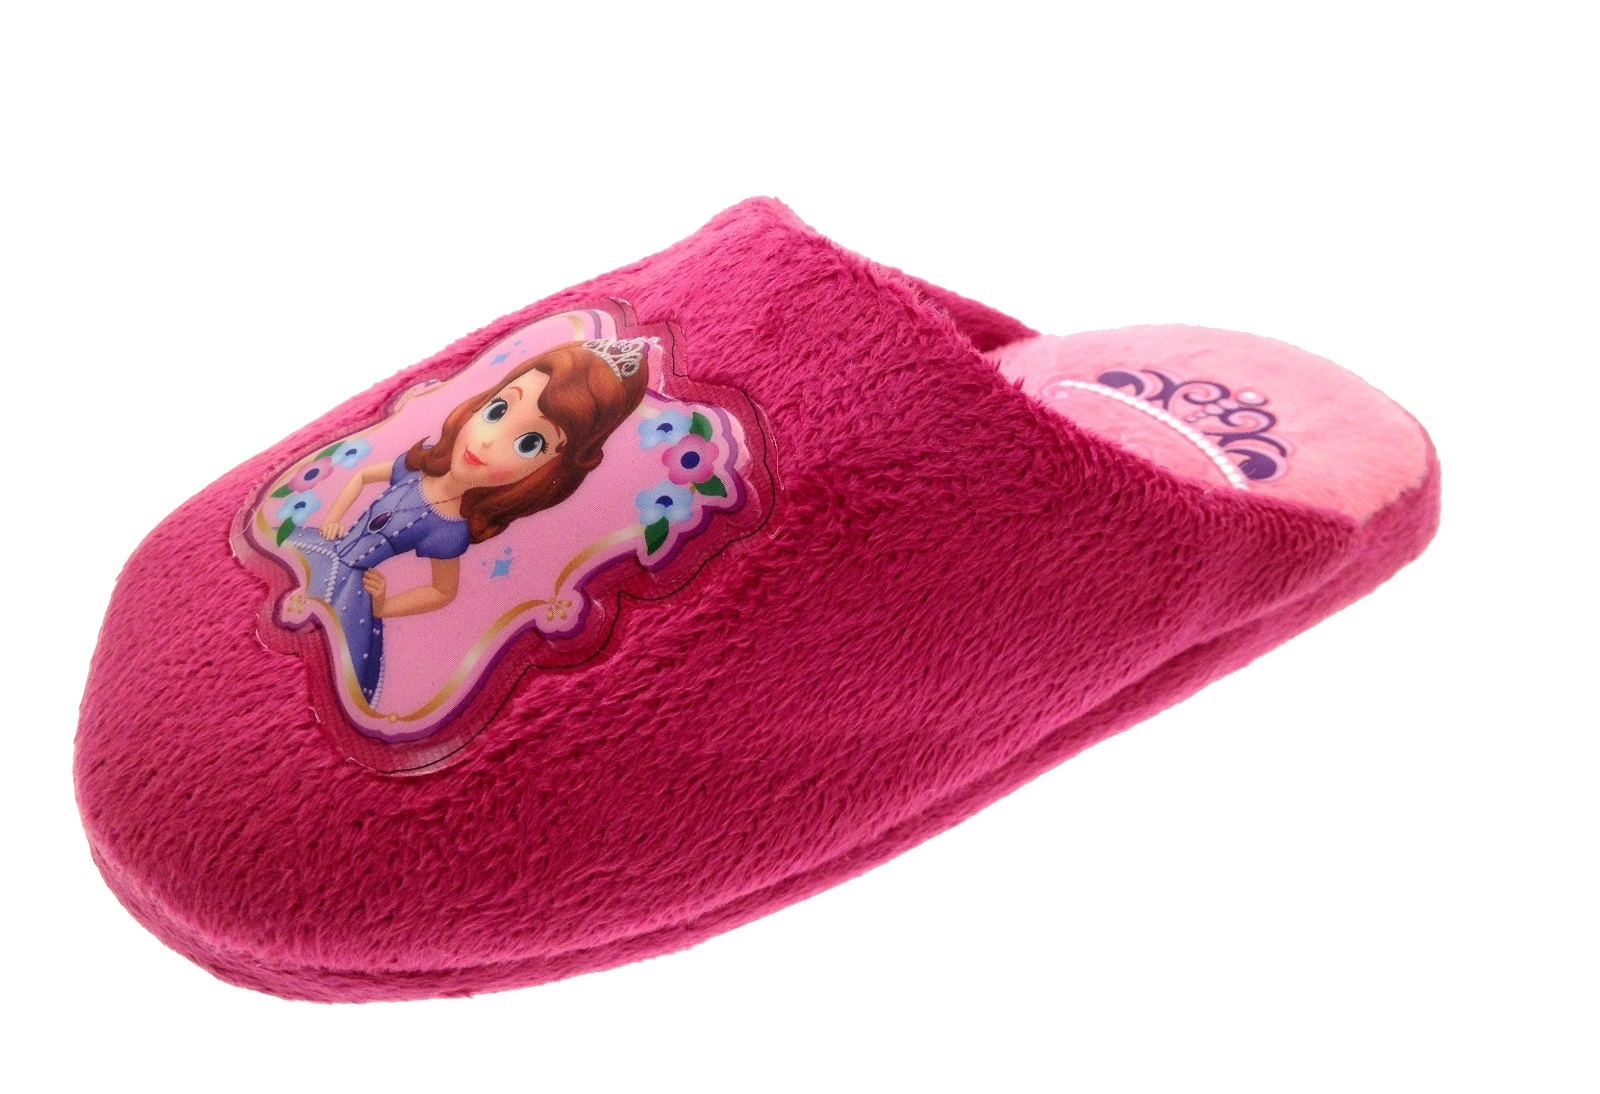 Enjoy free shipping and easy returns every day at Kohl's. Find great deals on Girls Slippers at Kohl's today!